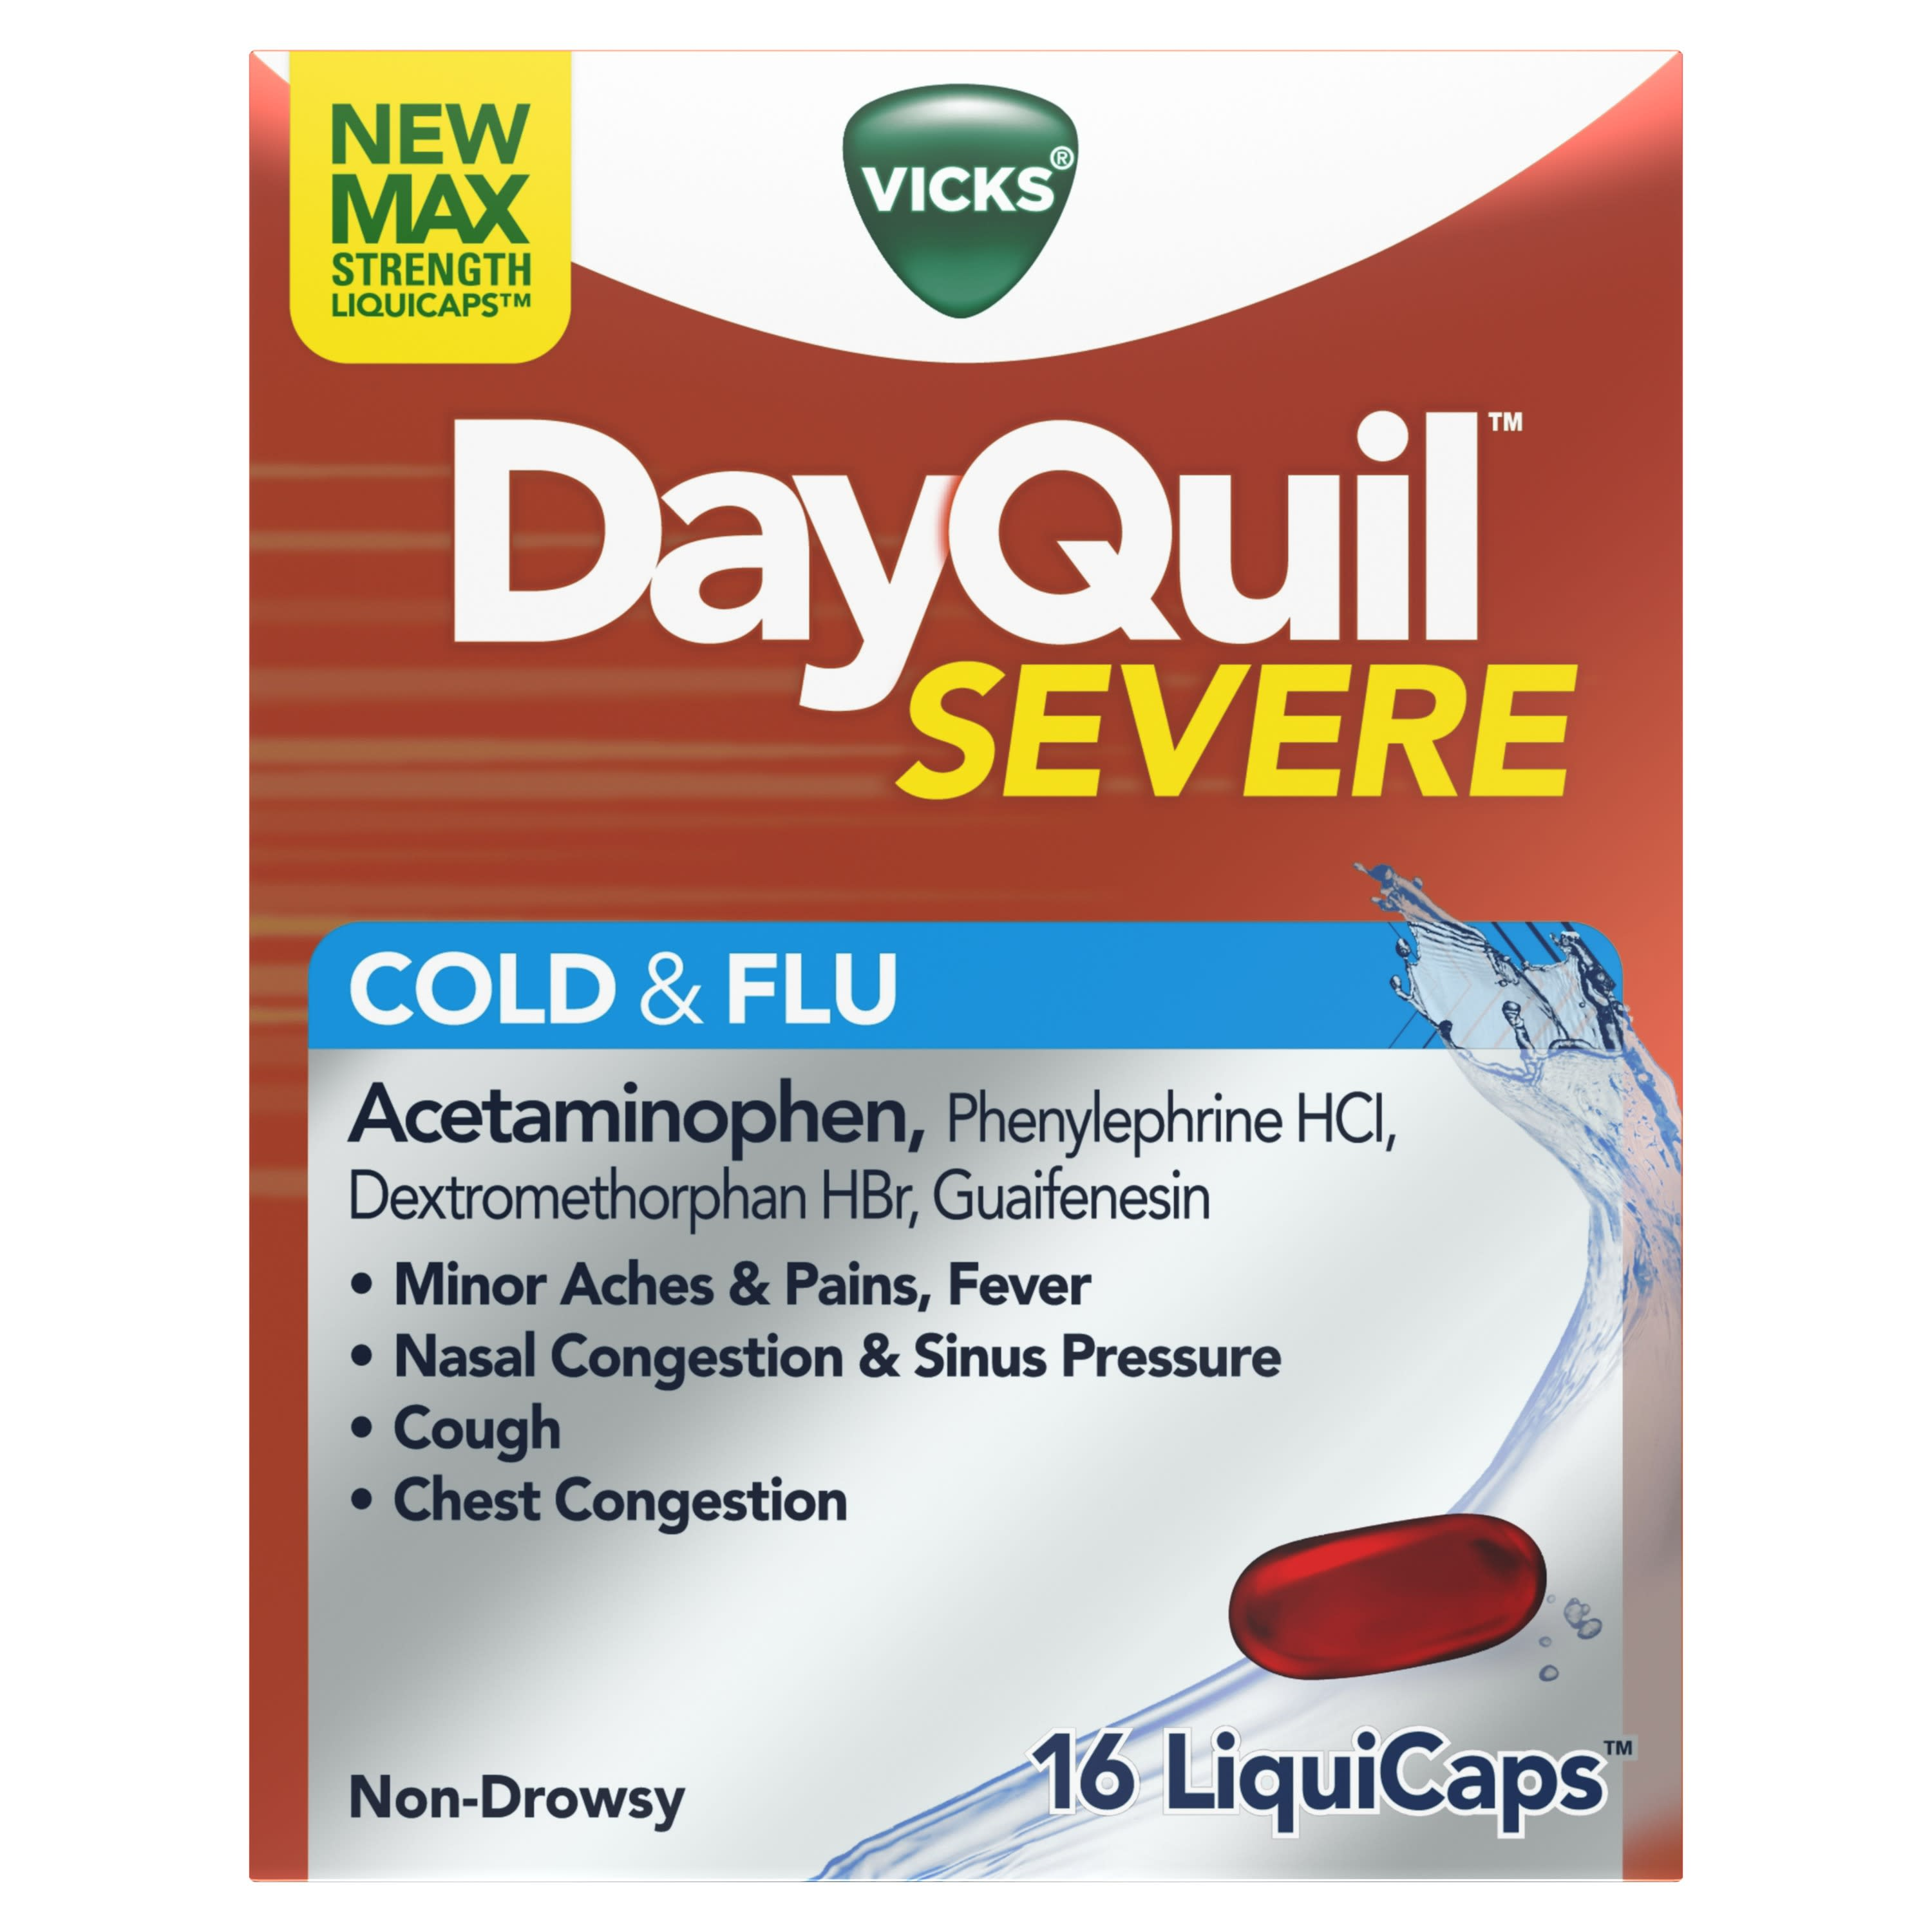 dayquil-severe-cough-cold-and-flu-daytime-relief-liquicaps